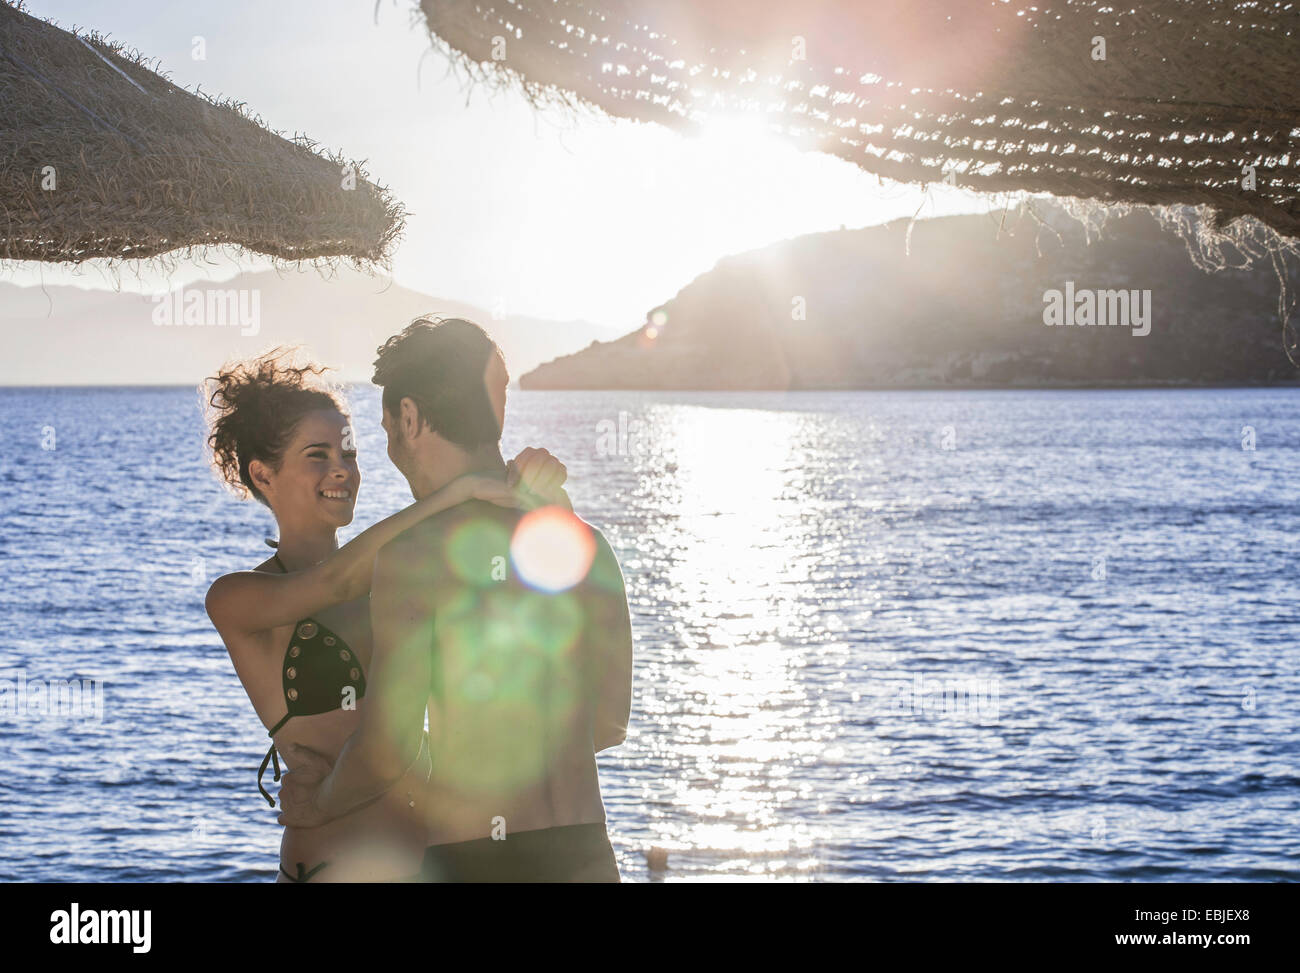 Couple embracing on vacation Photo Stock